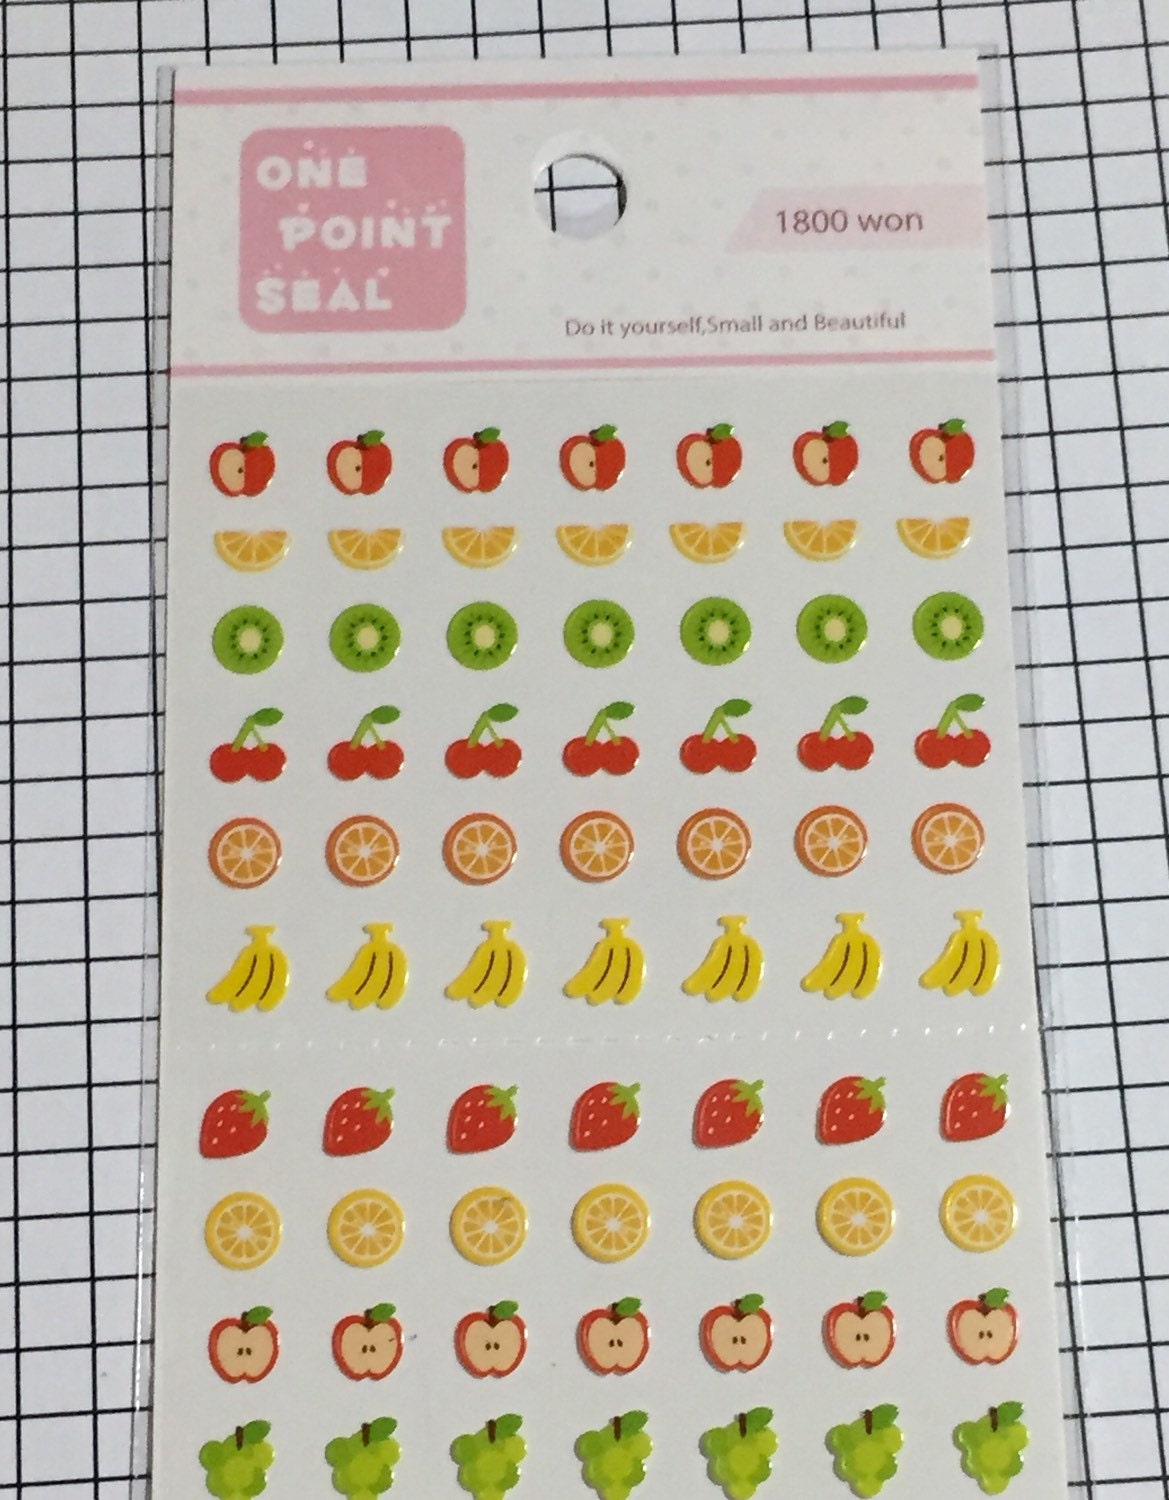 Korean One Point seal cute FRUIT stickers - 1 sheet - Small sticker ...